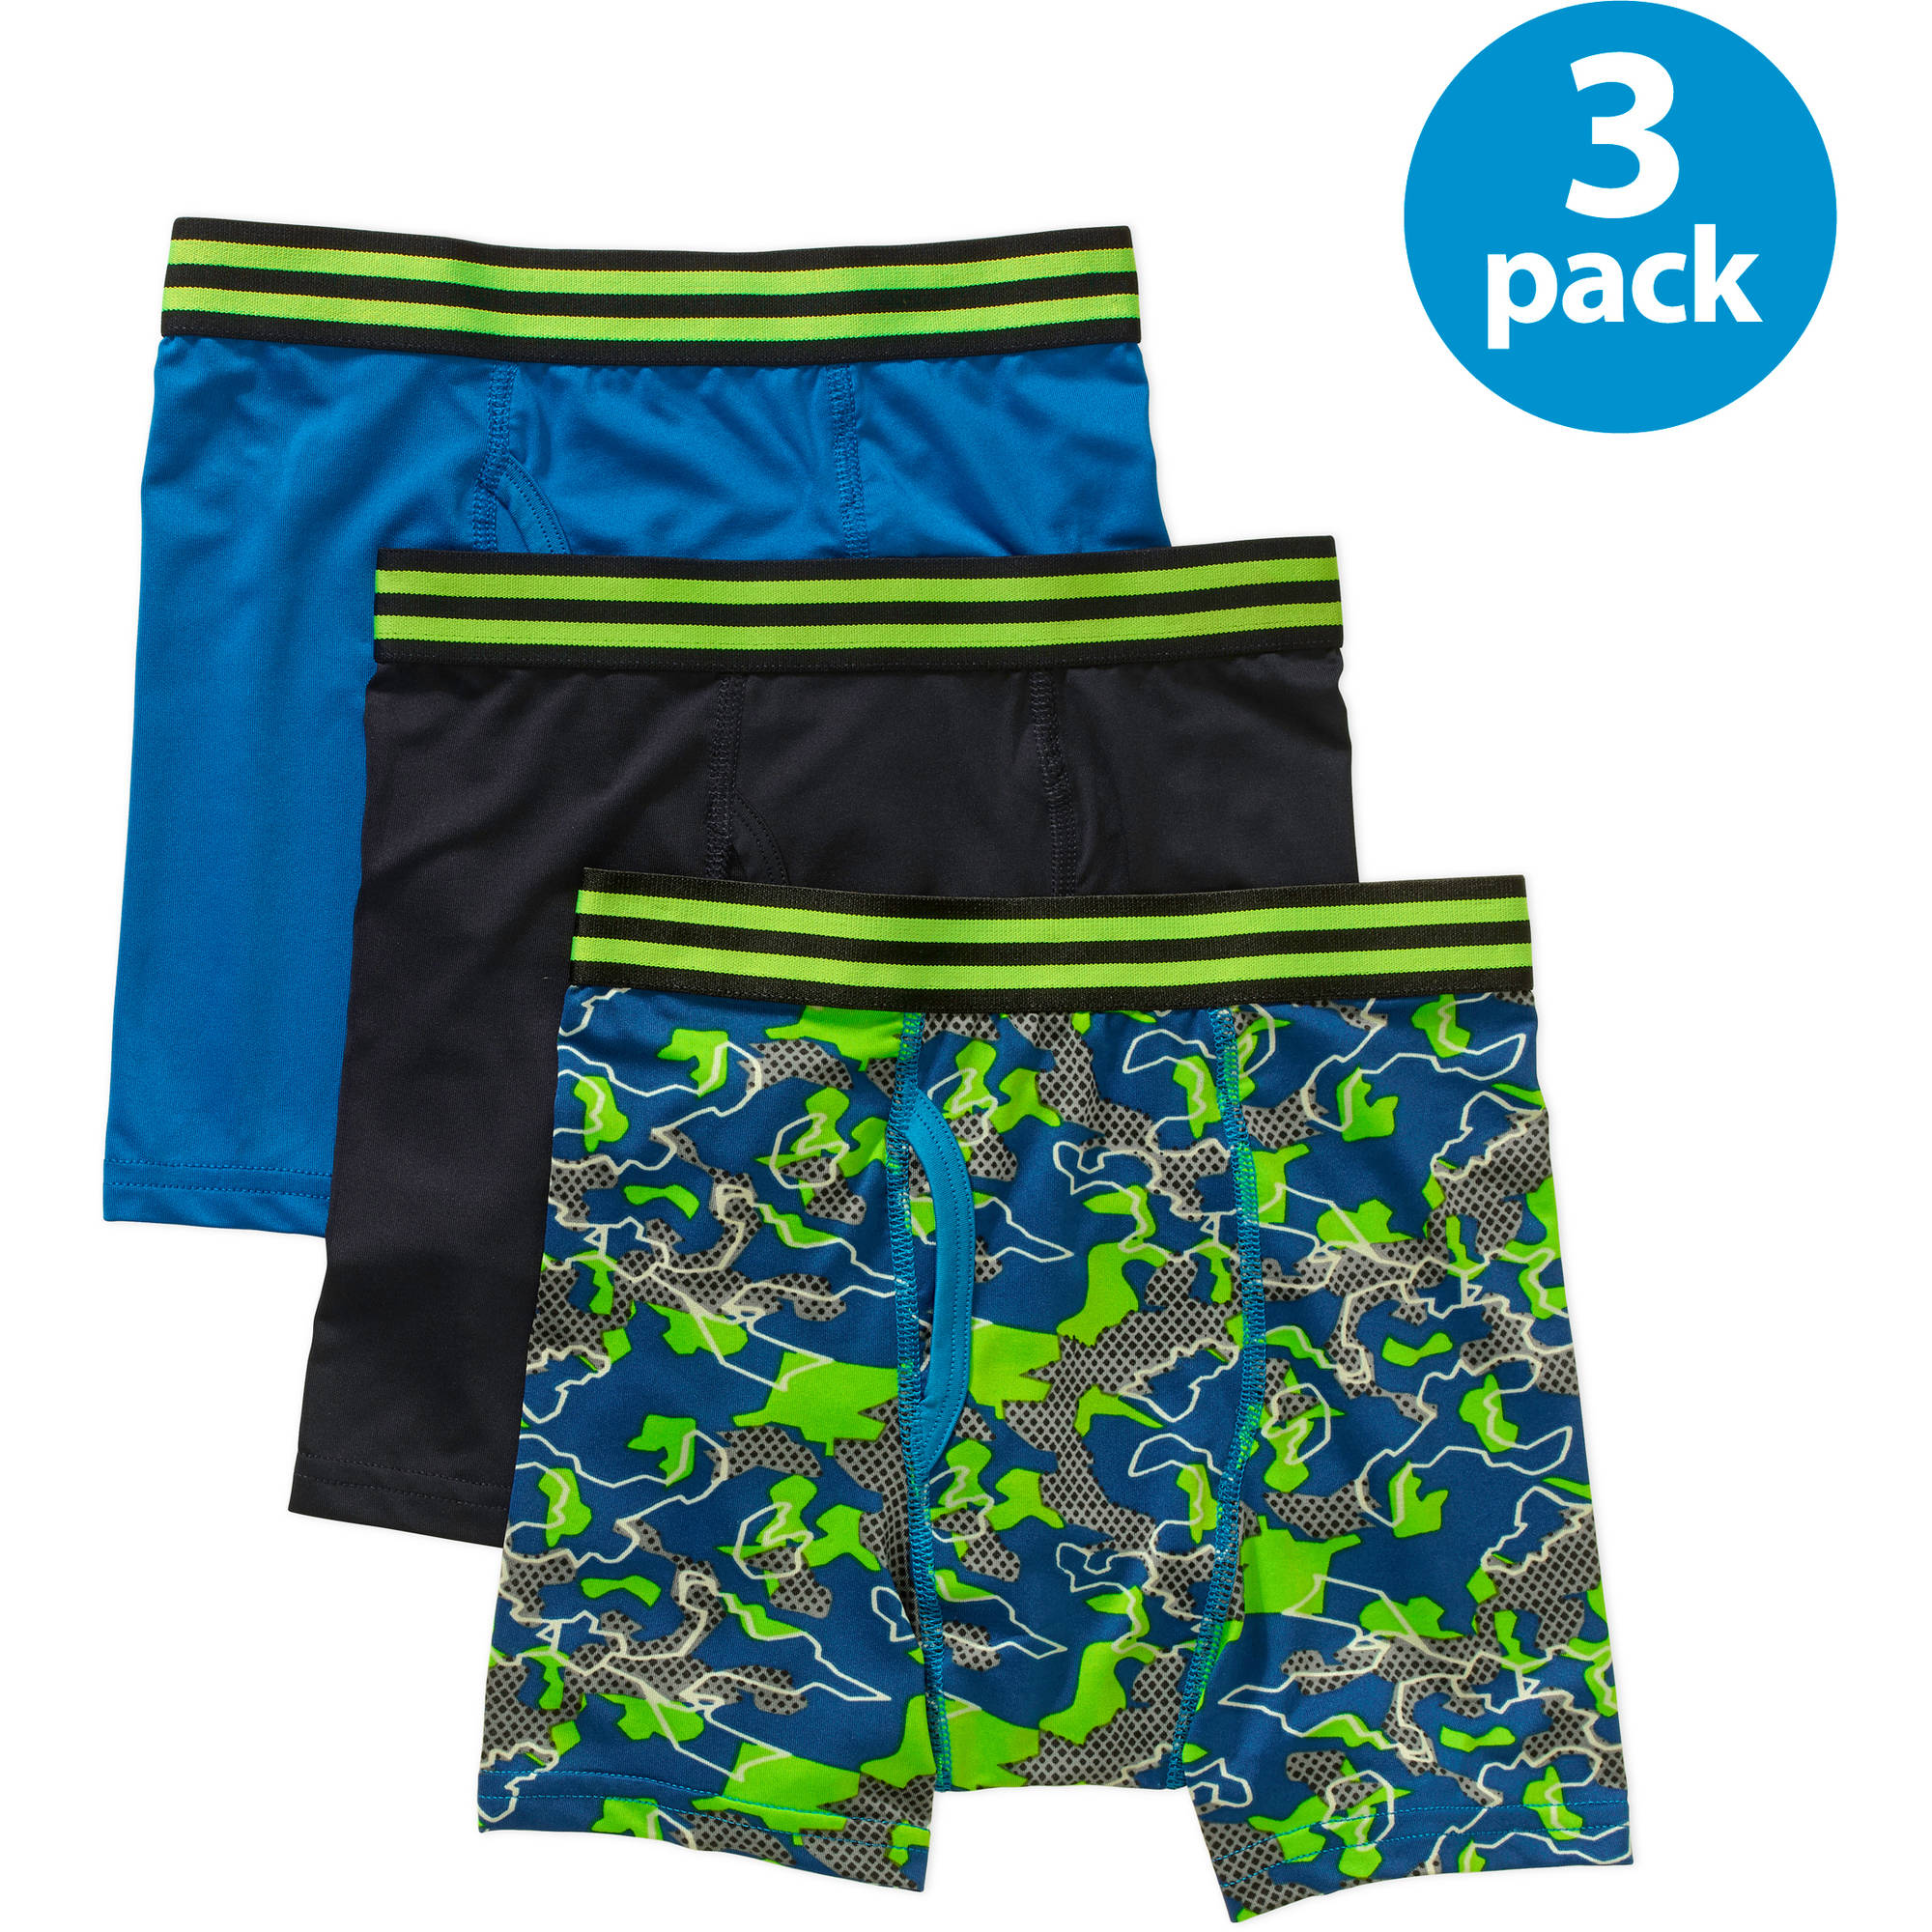 Starter Boys Printed Boxer Brief, 3 Pack